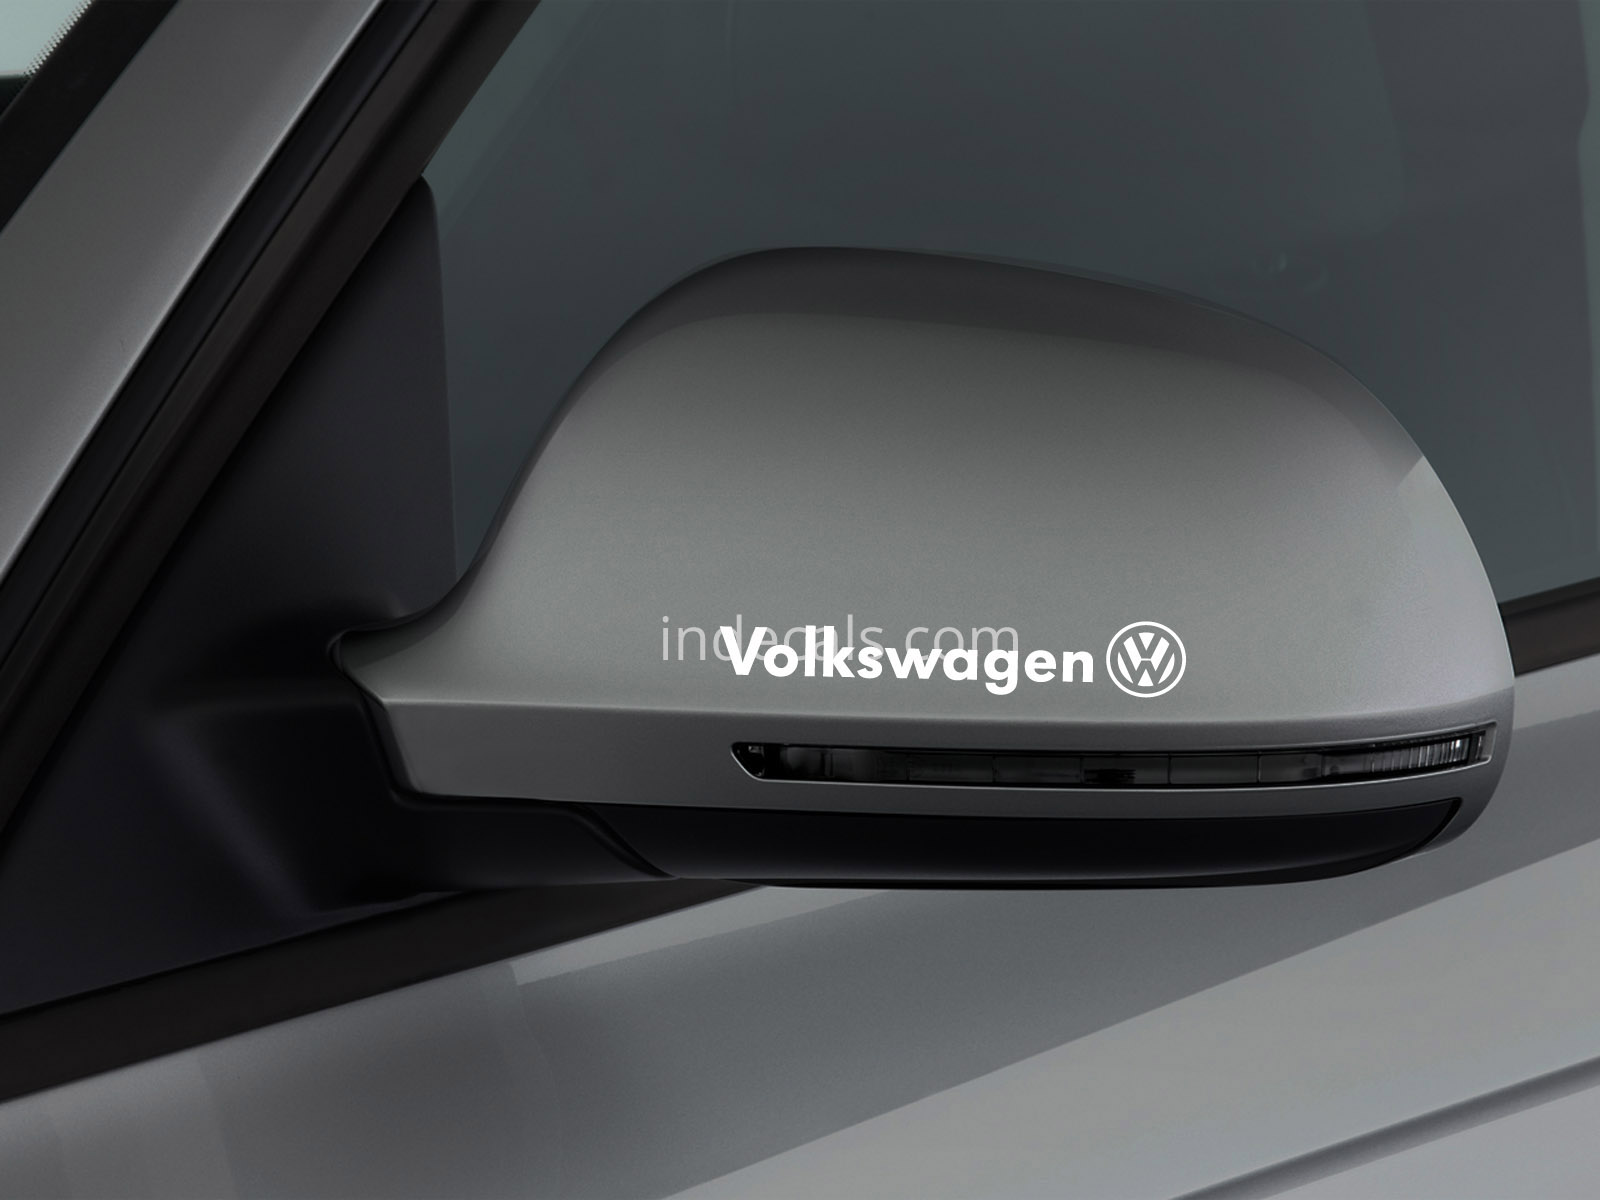 3 x volkswagen stickers for mirror white